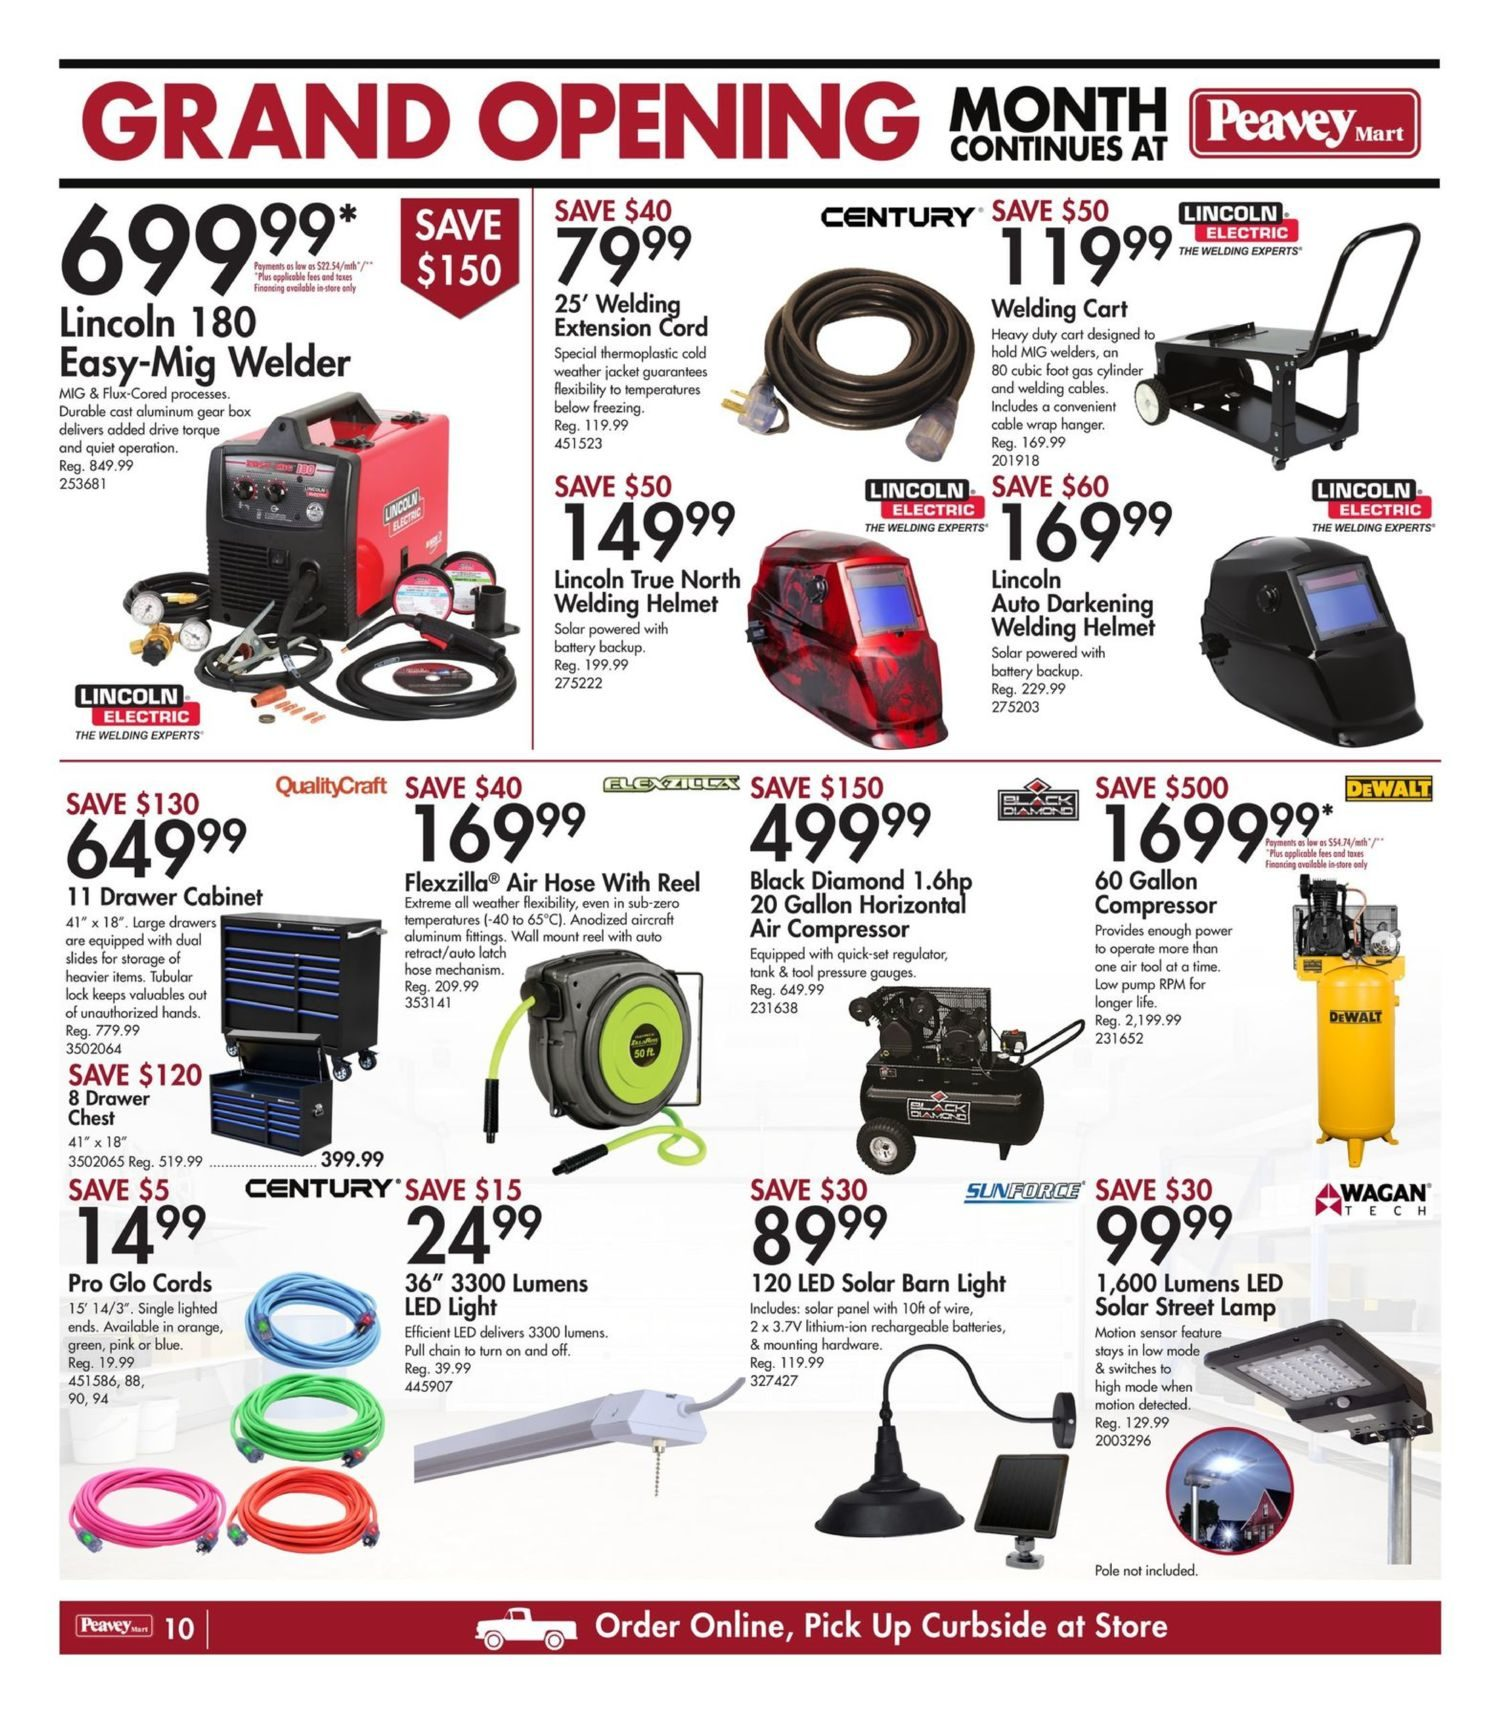 Peavey Mart - Weekly Flyer Specials - National Grand Opening Celebration - Page 13